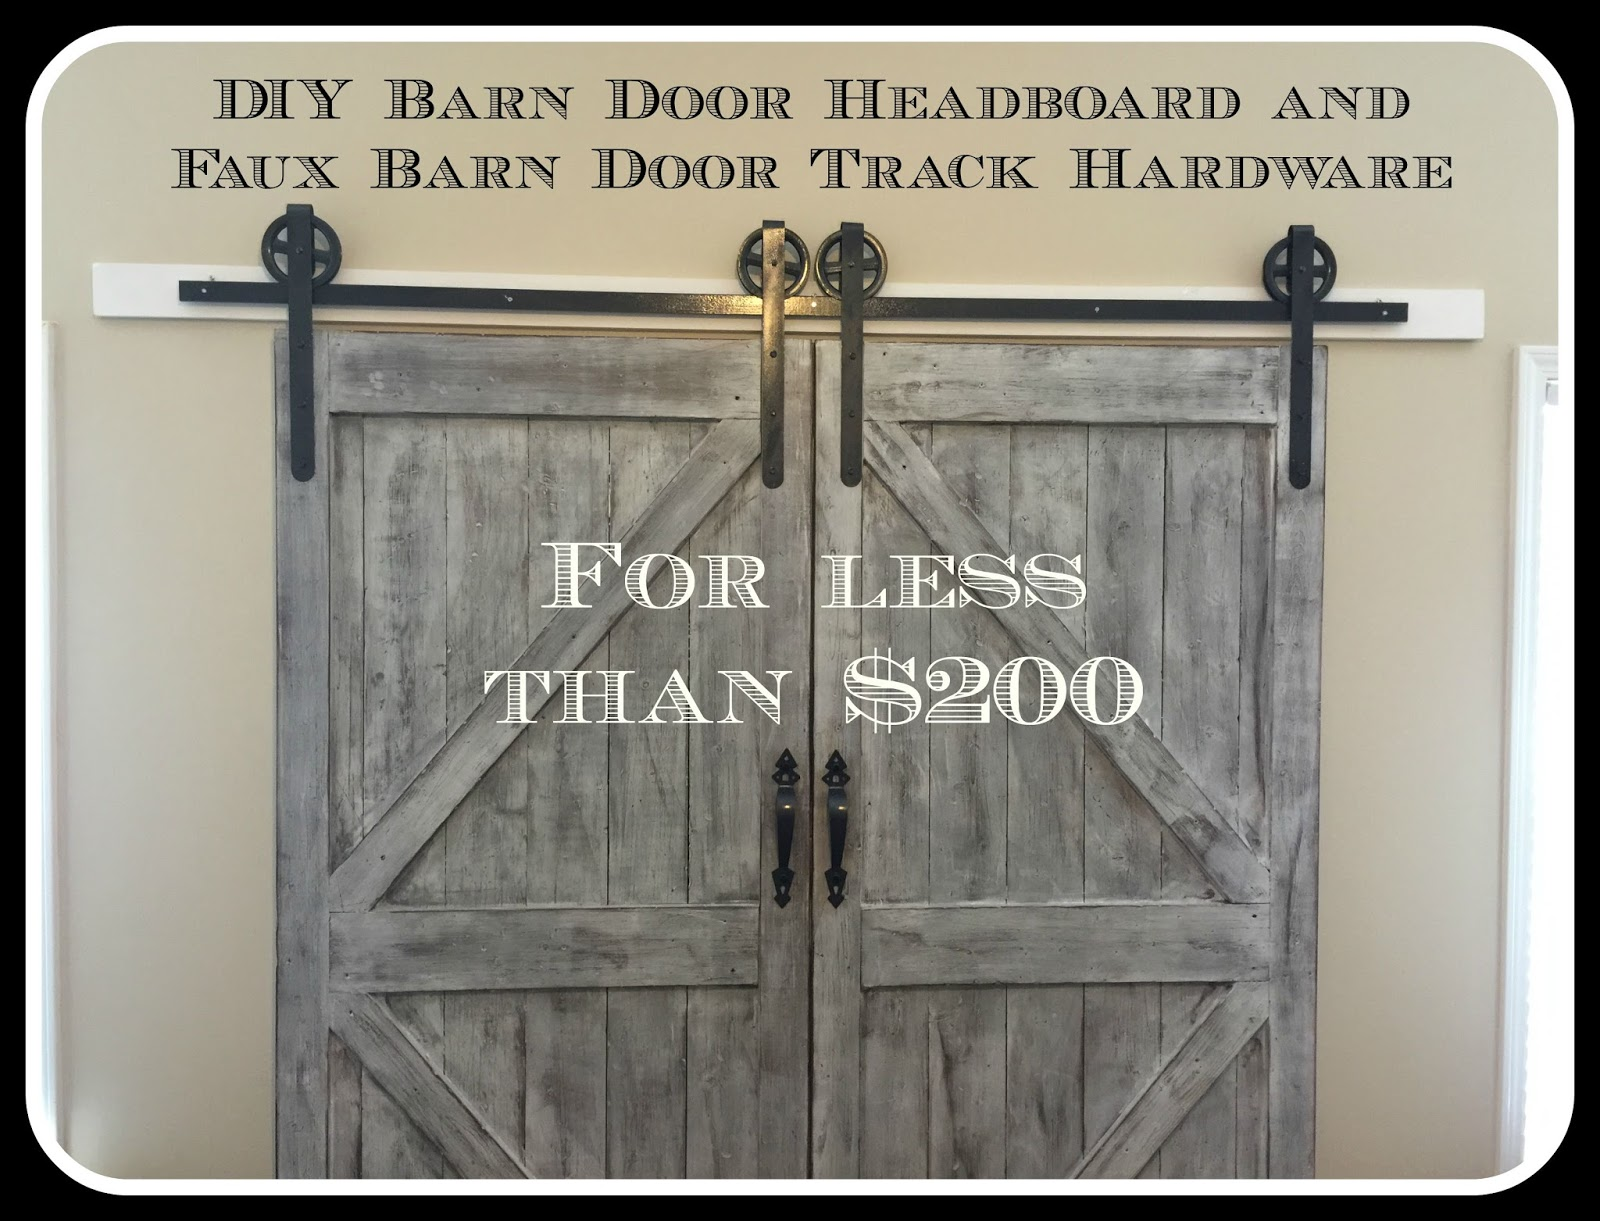 Cheaper And Better Diy Barn Door Headboard And Faux Barn